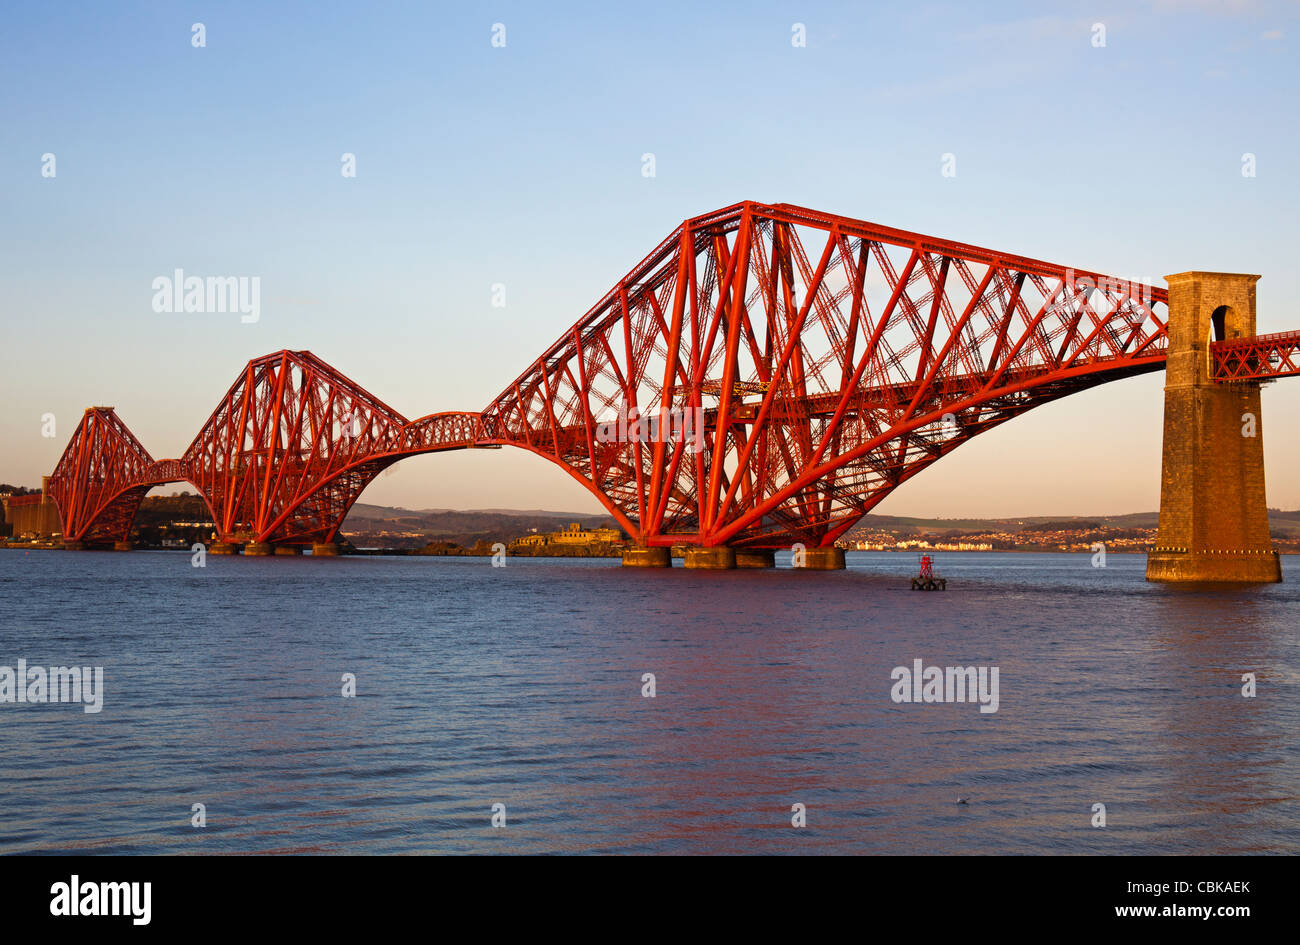 Forth Rail Bridge 2011 repainting and refurbishment now complete, South Queensferry, Scotland UK Europe Stock Photo